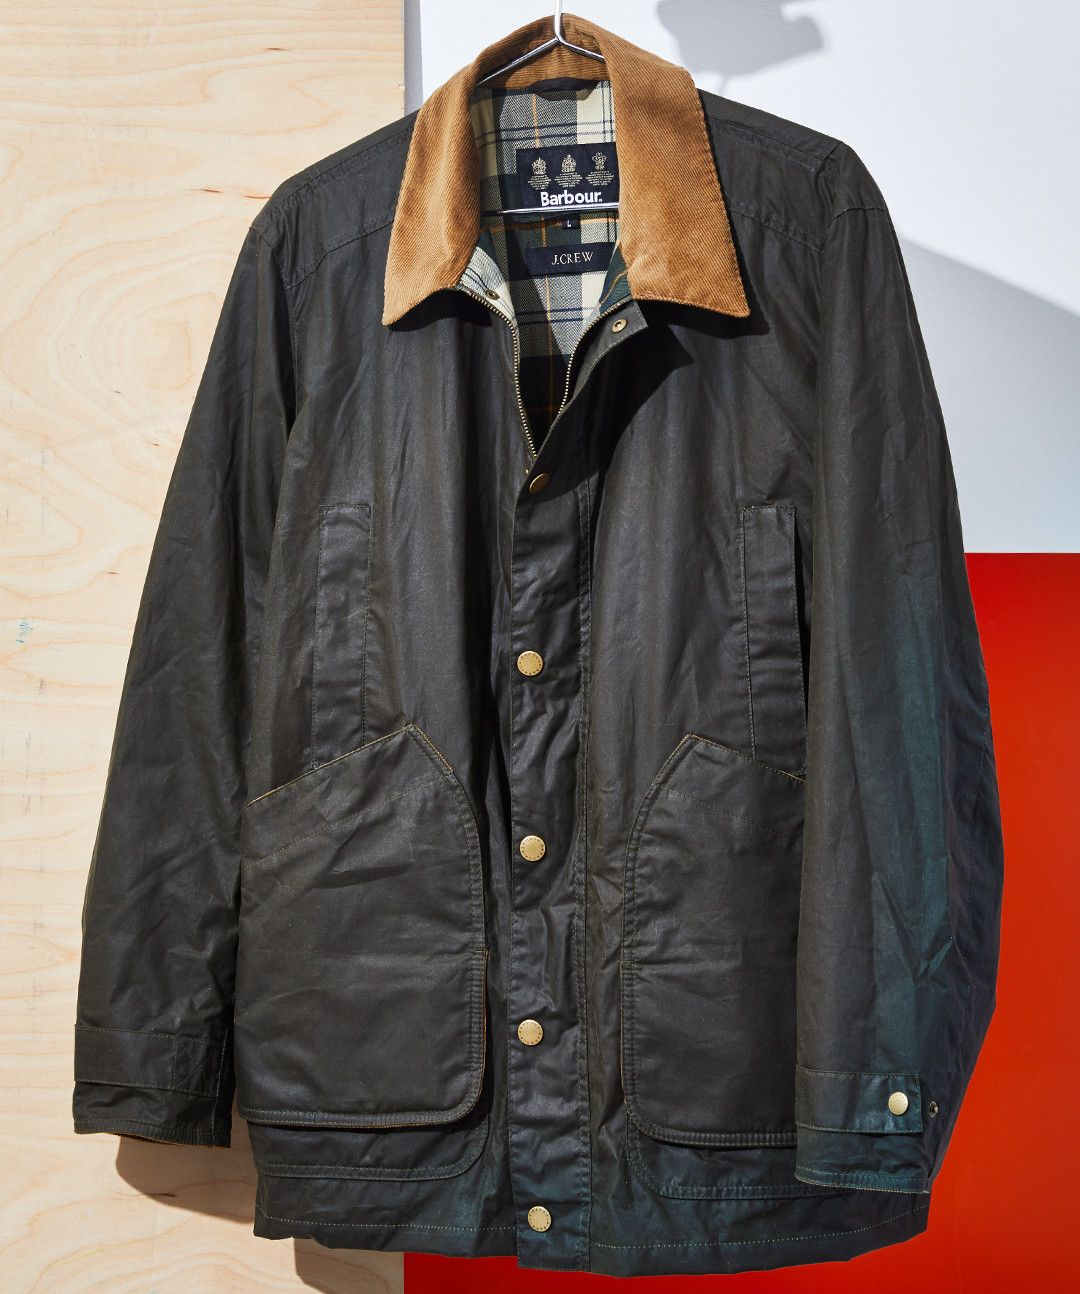 The Timelessly Stylish Jacket That Gets Better With Age